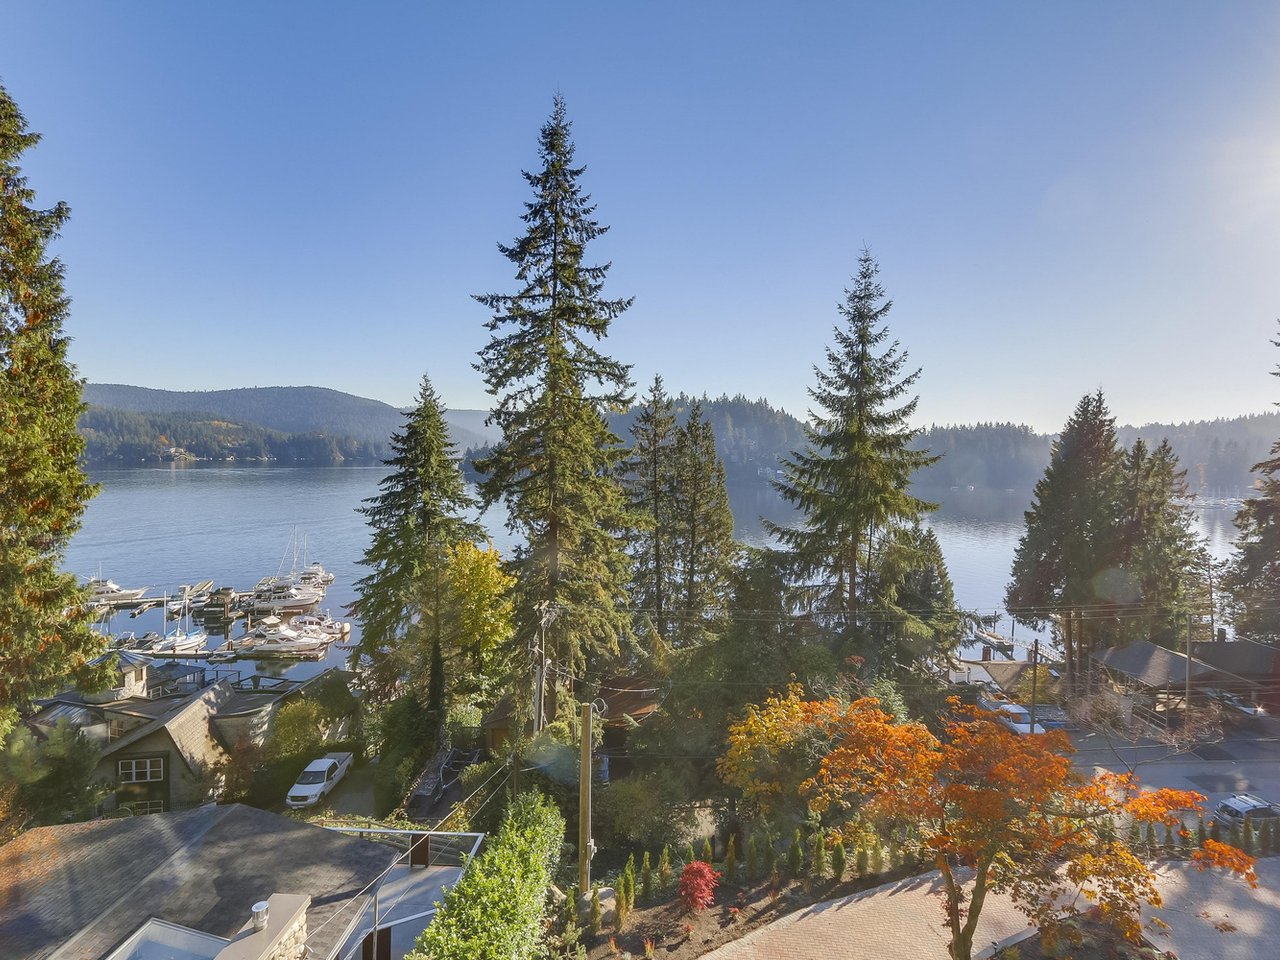 2867 Panorama,North Vancouver,BC,Canada V7G 1V7,4 Bedrooms Bedrooms,3 BathroomsBathrooms,Single Family House,Panorama Villa,Panorama ,4,1271